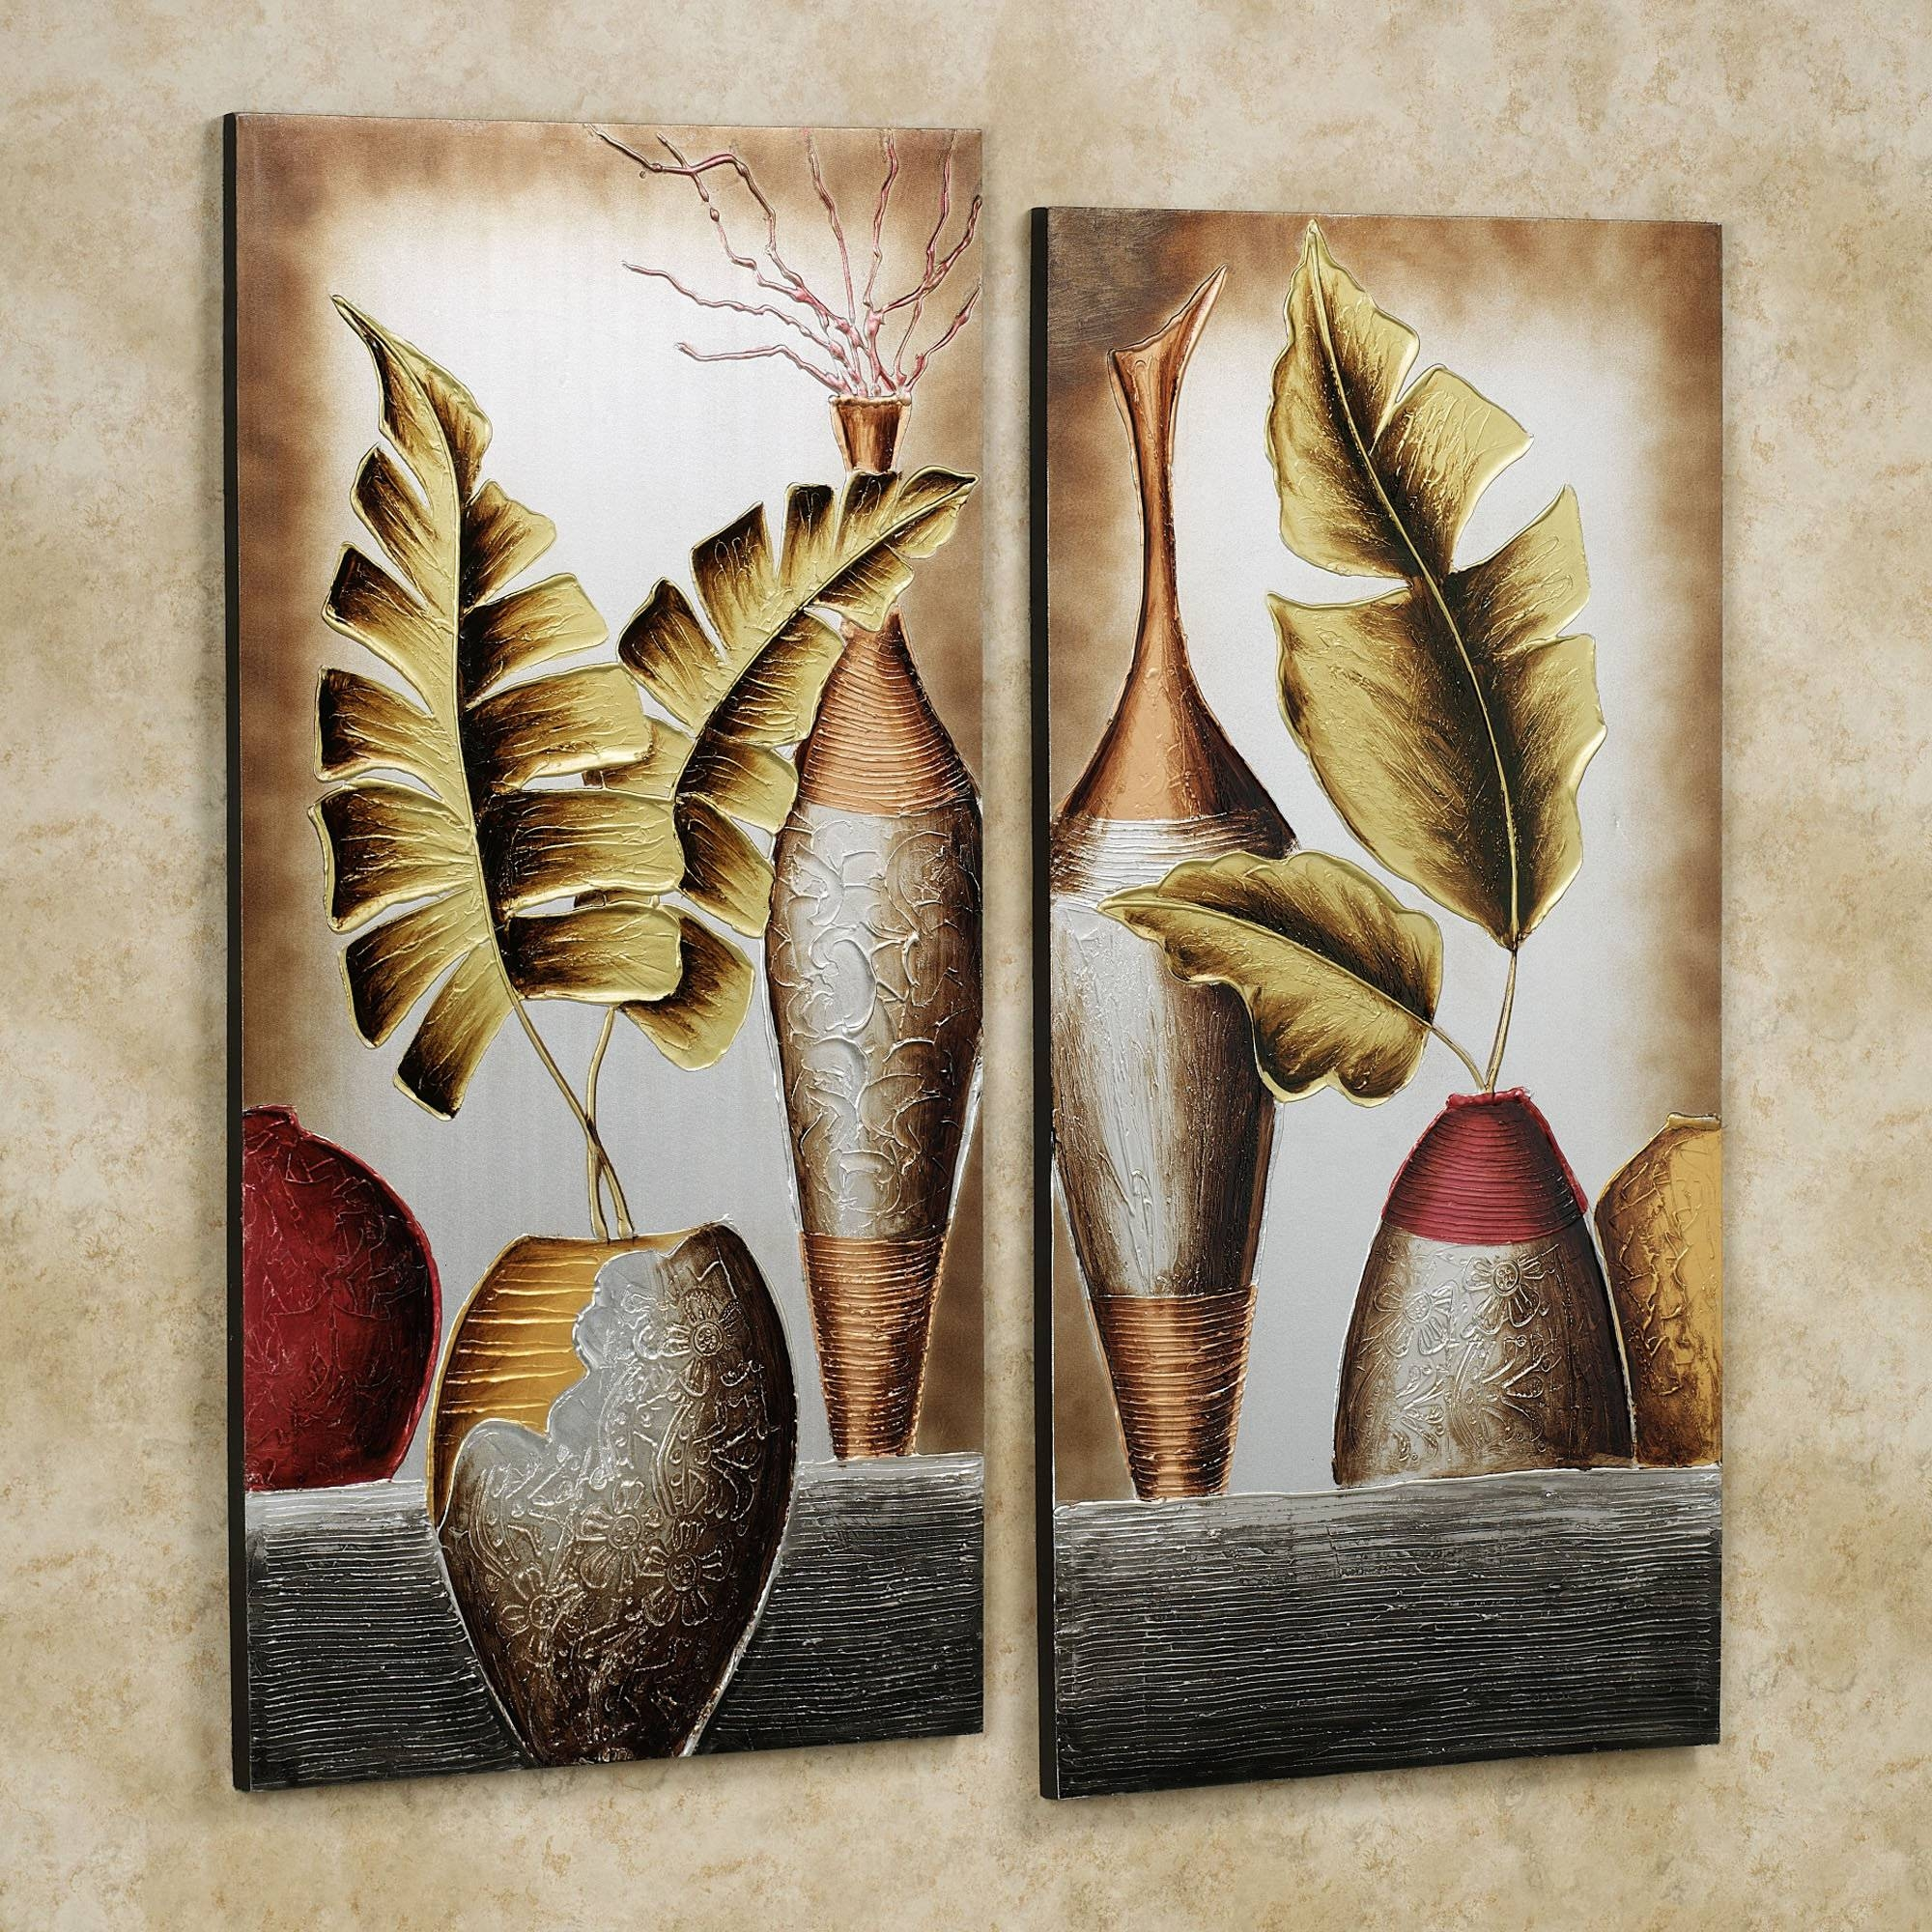 Impressive 3 Canvas Wall Art Set Wall Art Overstock Canvas Canvas Within Most Recent Canvas Wall Art Sets Of 3 (Gallery 7 of 25)